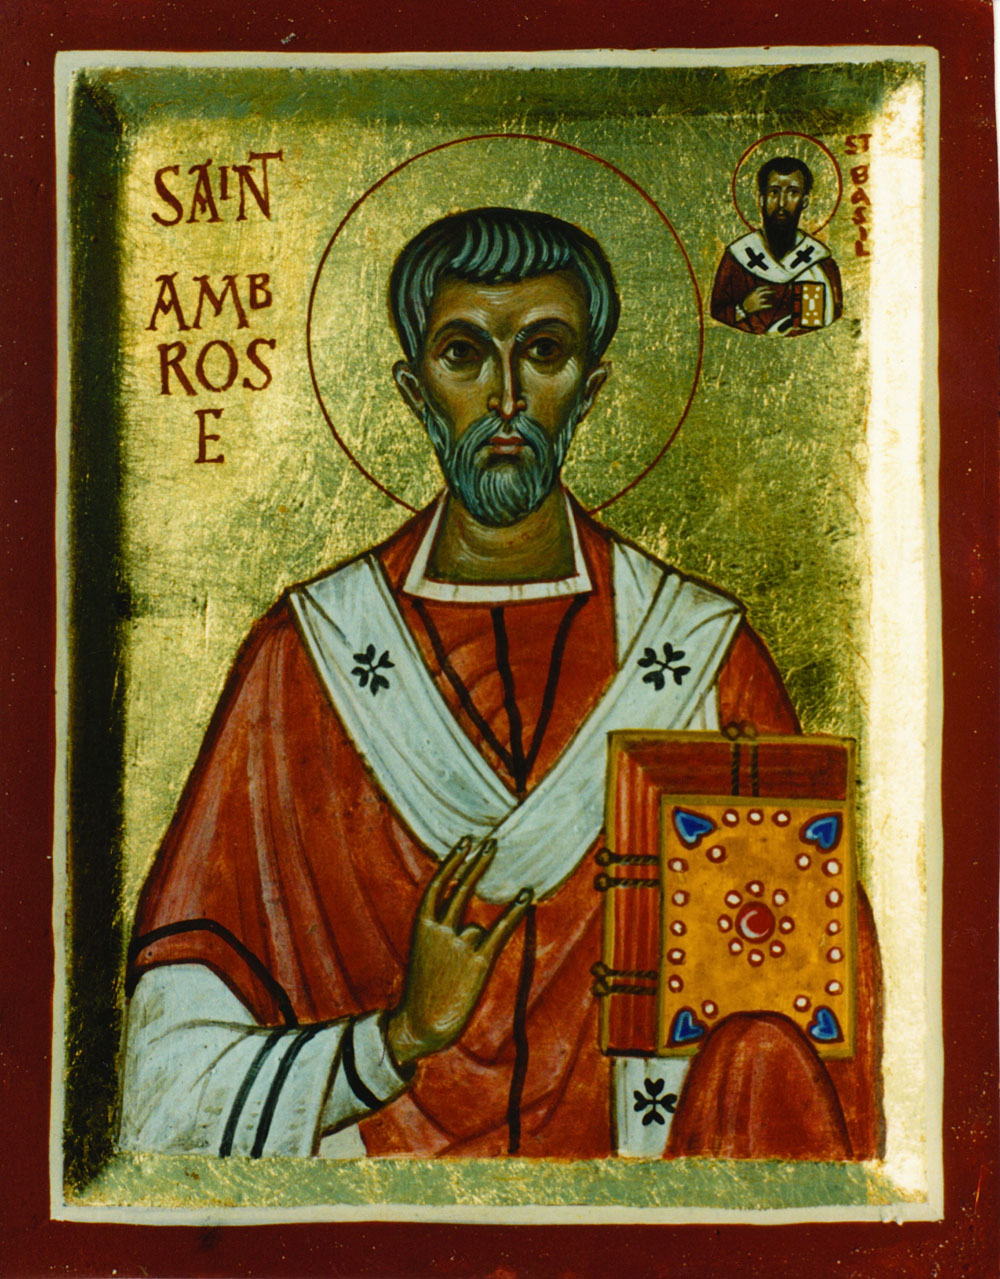 December 7, 2014 </br>26th Sunday after Pentecost, Tone 1 </br>Our Holy Father Ambrose, Bishop of Milan